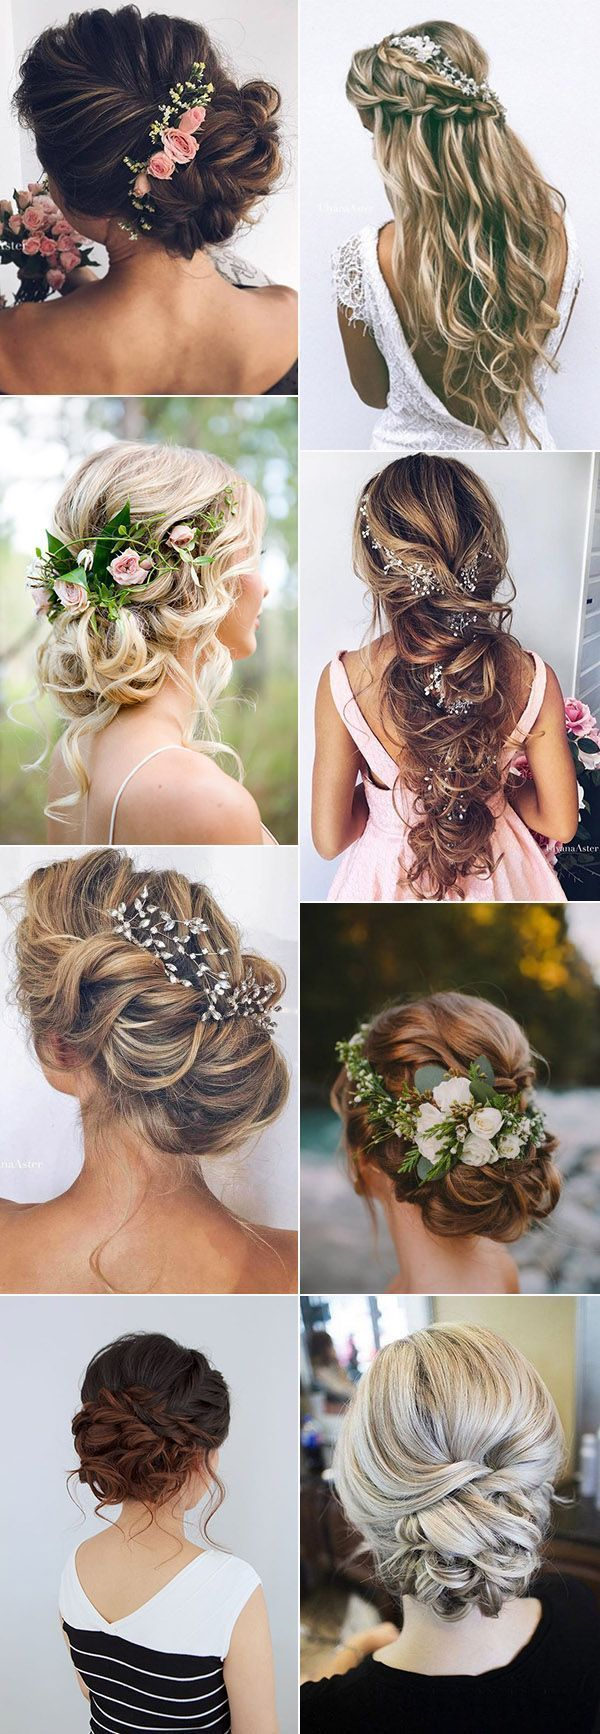 The 20 Best Hairstyles for 2017 Trends 2017 # Hairstyles # Wedding # Ideas # tre